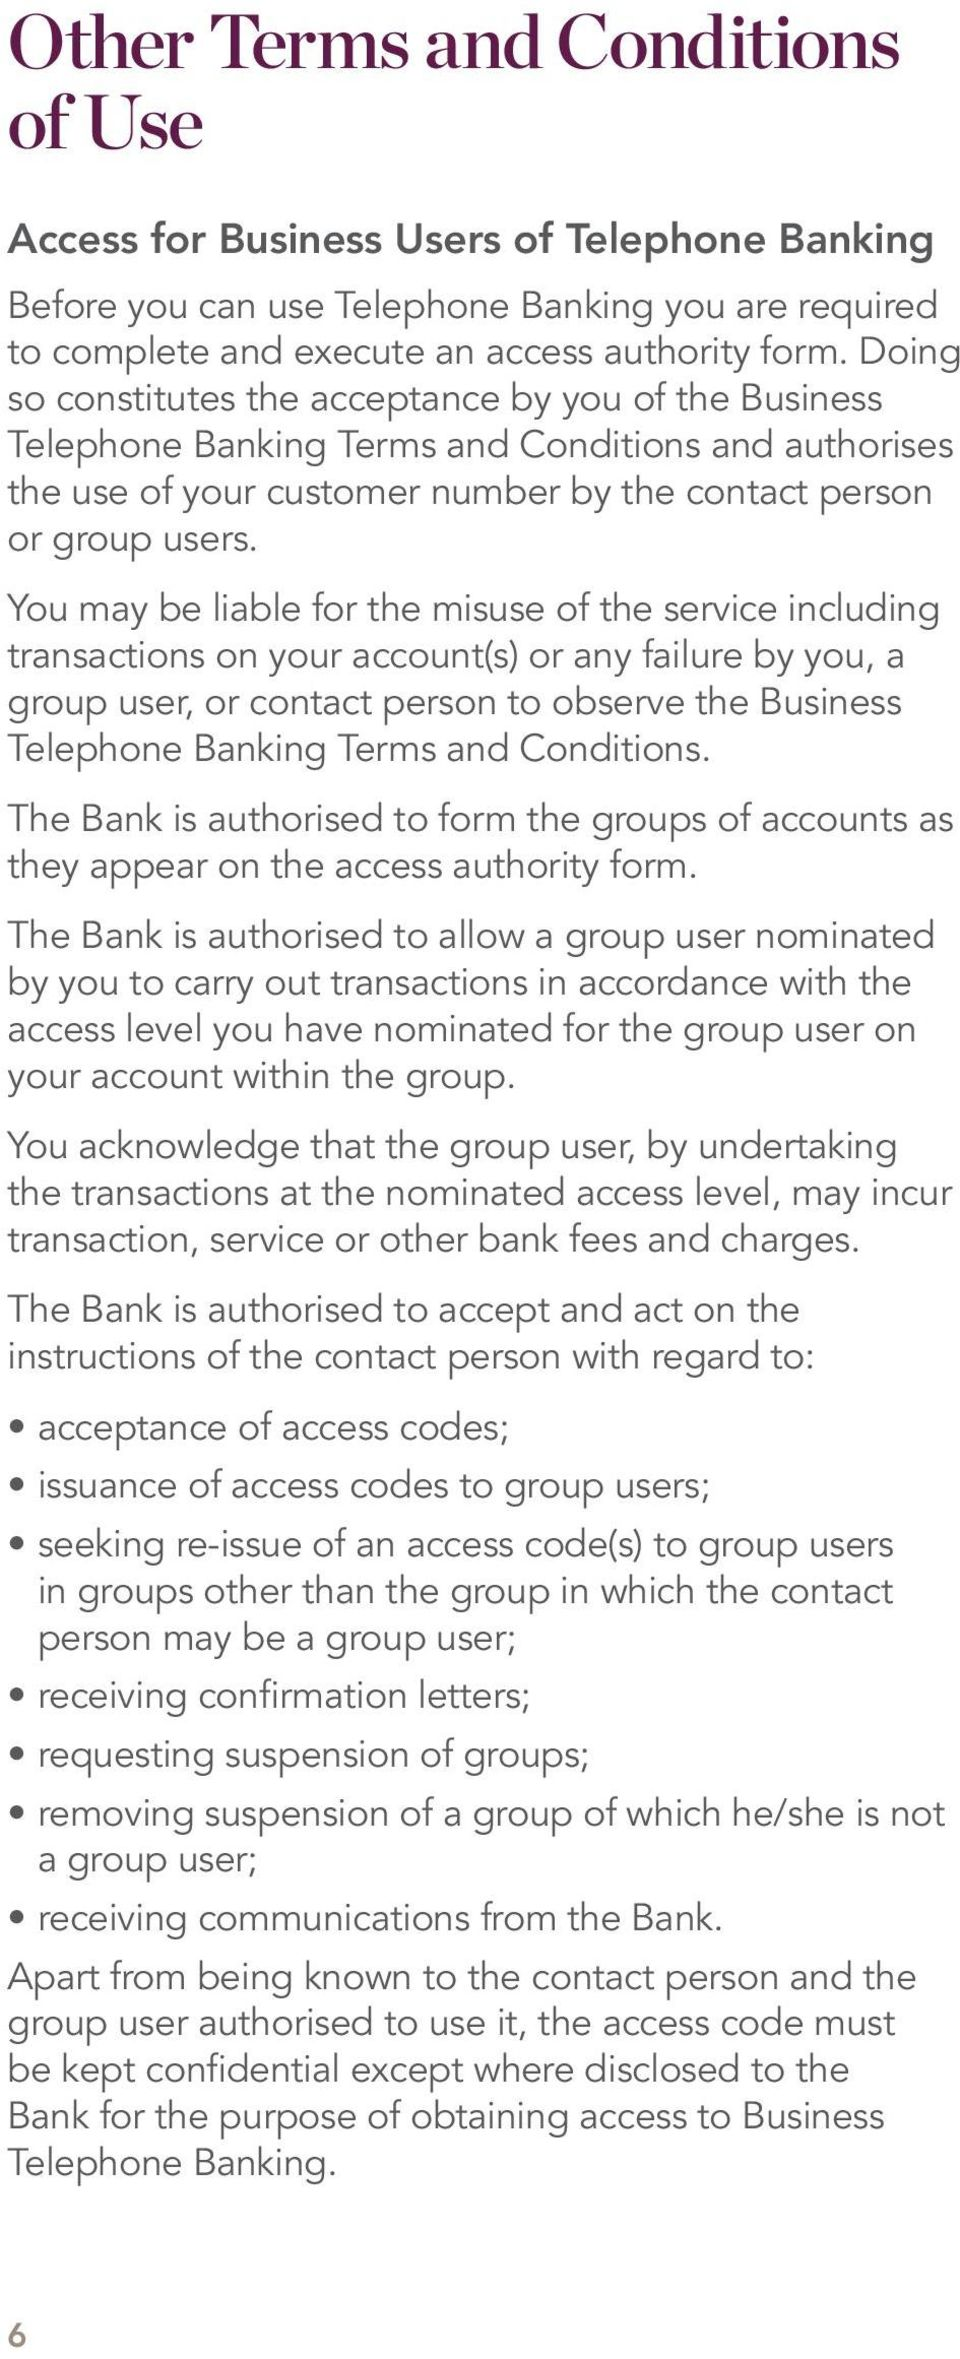 You may be liable for the misuse of the service including transactions on your account(s) or any failure by you, a group user, or contact person to observe the Business Telephone Banking Terms and